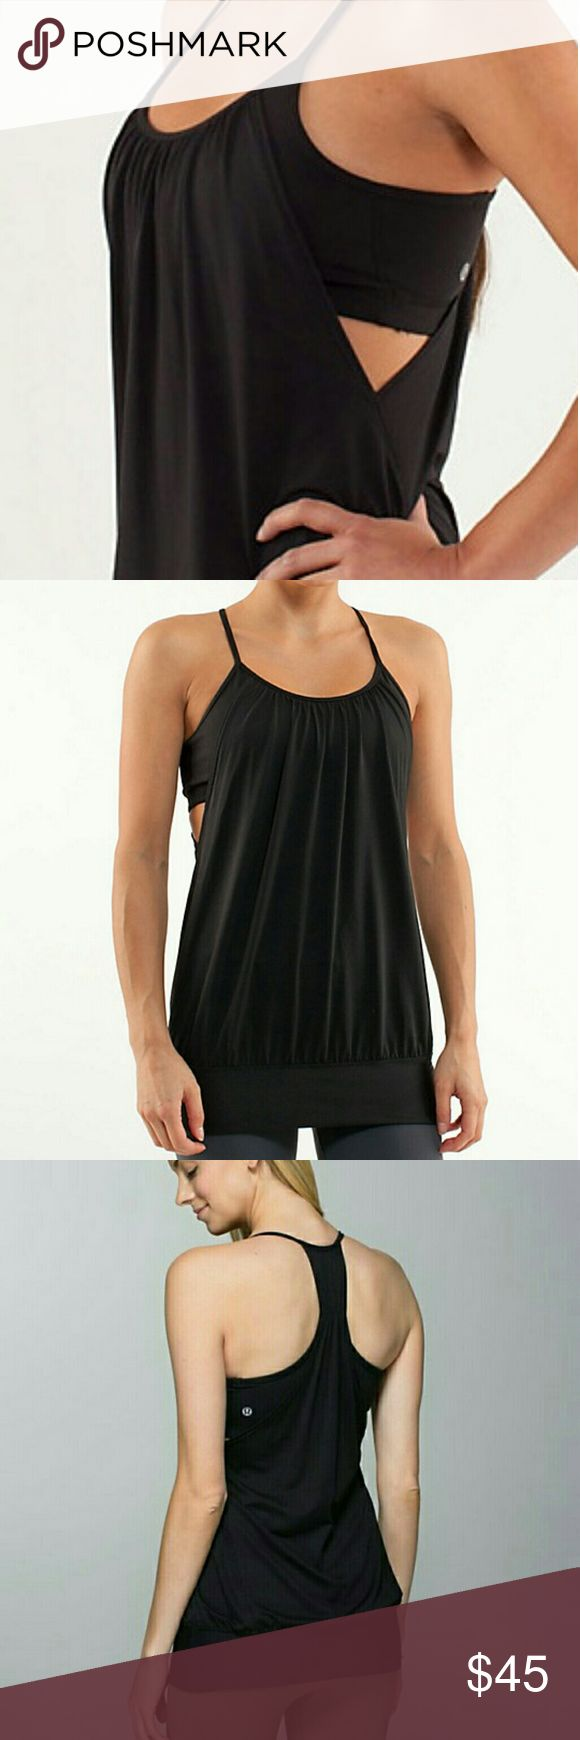 Lululemon No Limits Black Workout Tank Top Size 4 Built in bra with mesh racer back top. Bra pads are missing,  but otherwise excellent condition.  Mesh panels placed in your high-sweat zones help you stay cool and dry breathable Circle Mesh fabric is moisture-wicking the wide band around the hips keeps the tank in place flat-seamed for comfort in your tender underarm areas lululemon athletica Tops Tank Tops